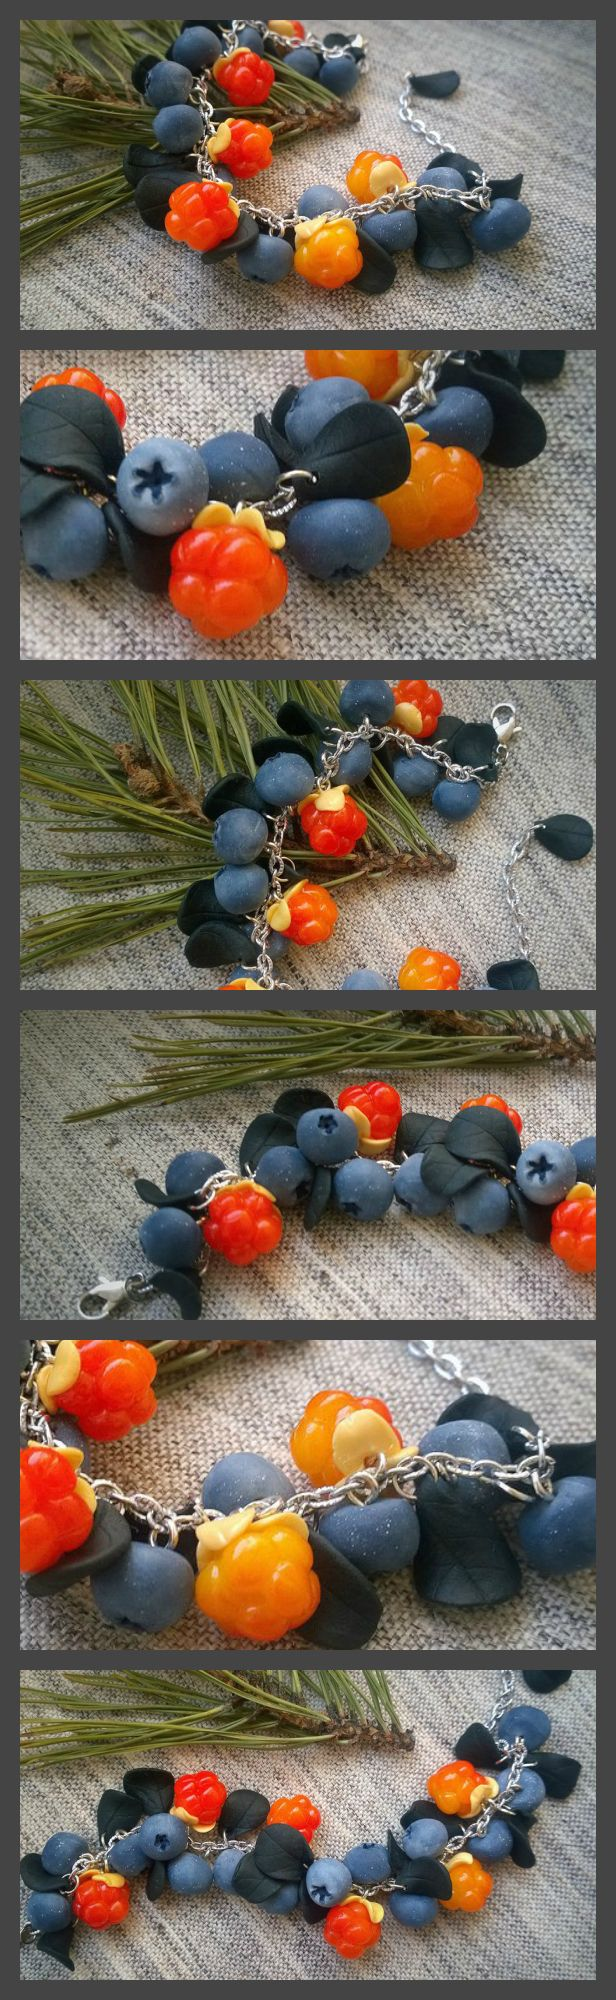 #berries #polymerclay #berry #cloudberry #blueberry #fimo #fimoeffect #fimoclay #etsy #staedtler #summer #hobby #handmade